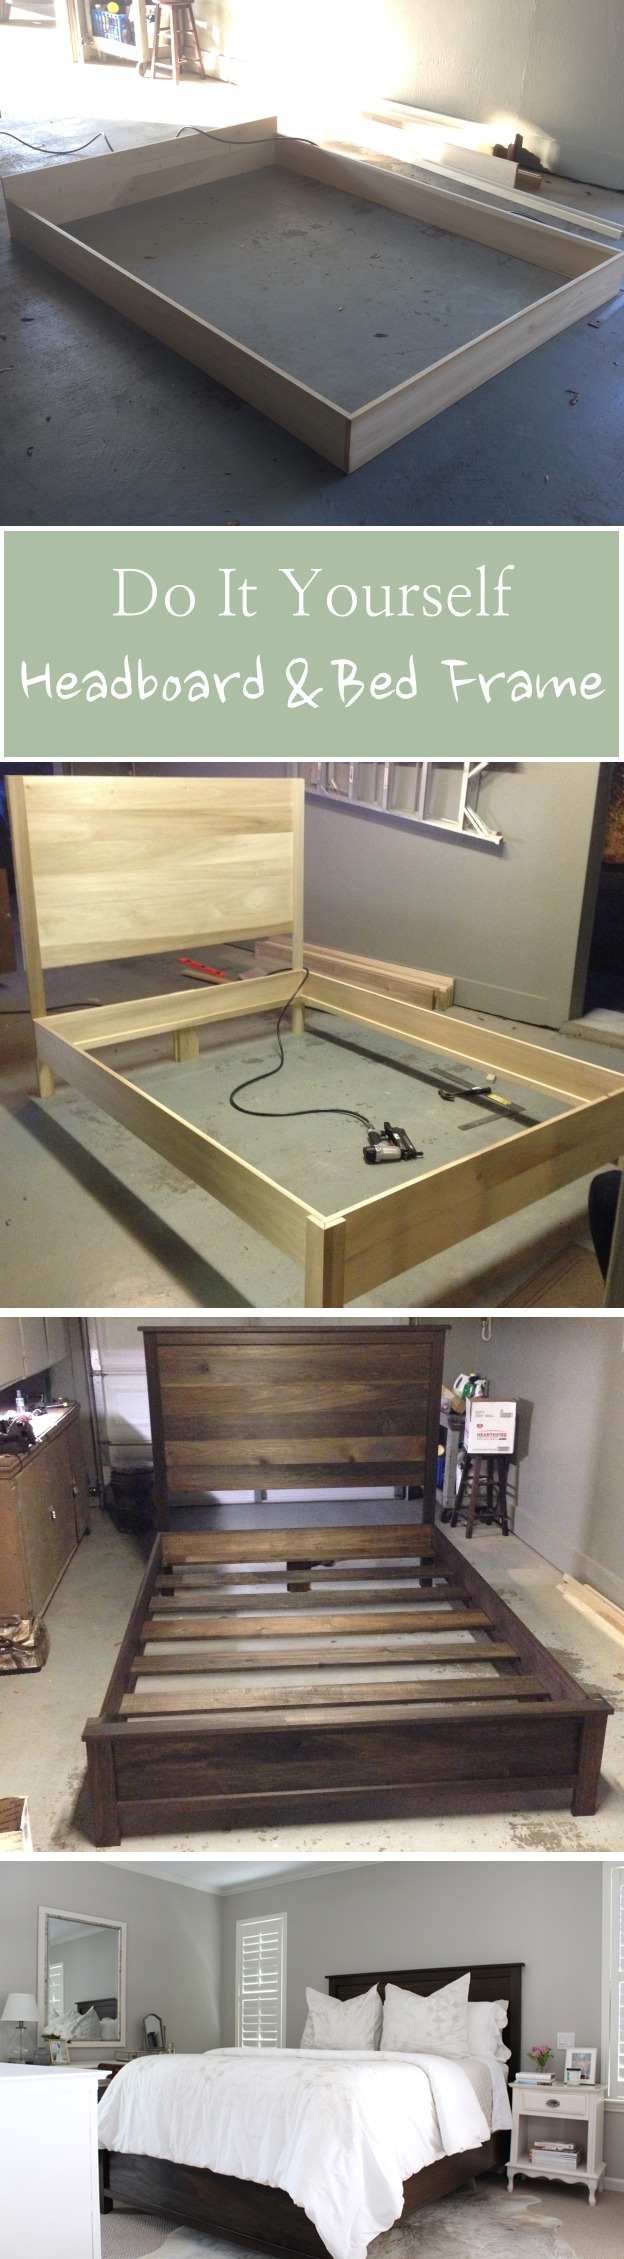 DIY Headboard & Bed Frame